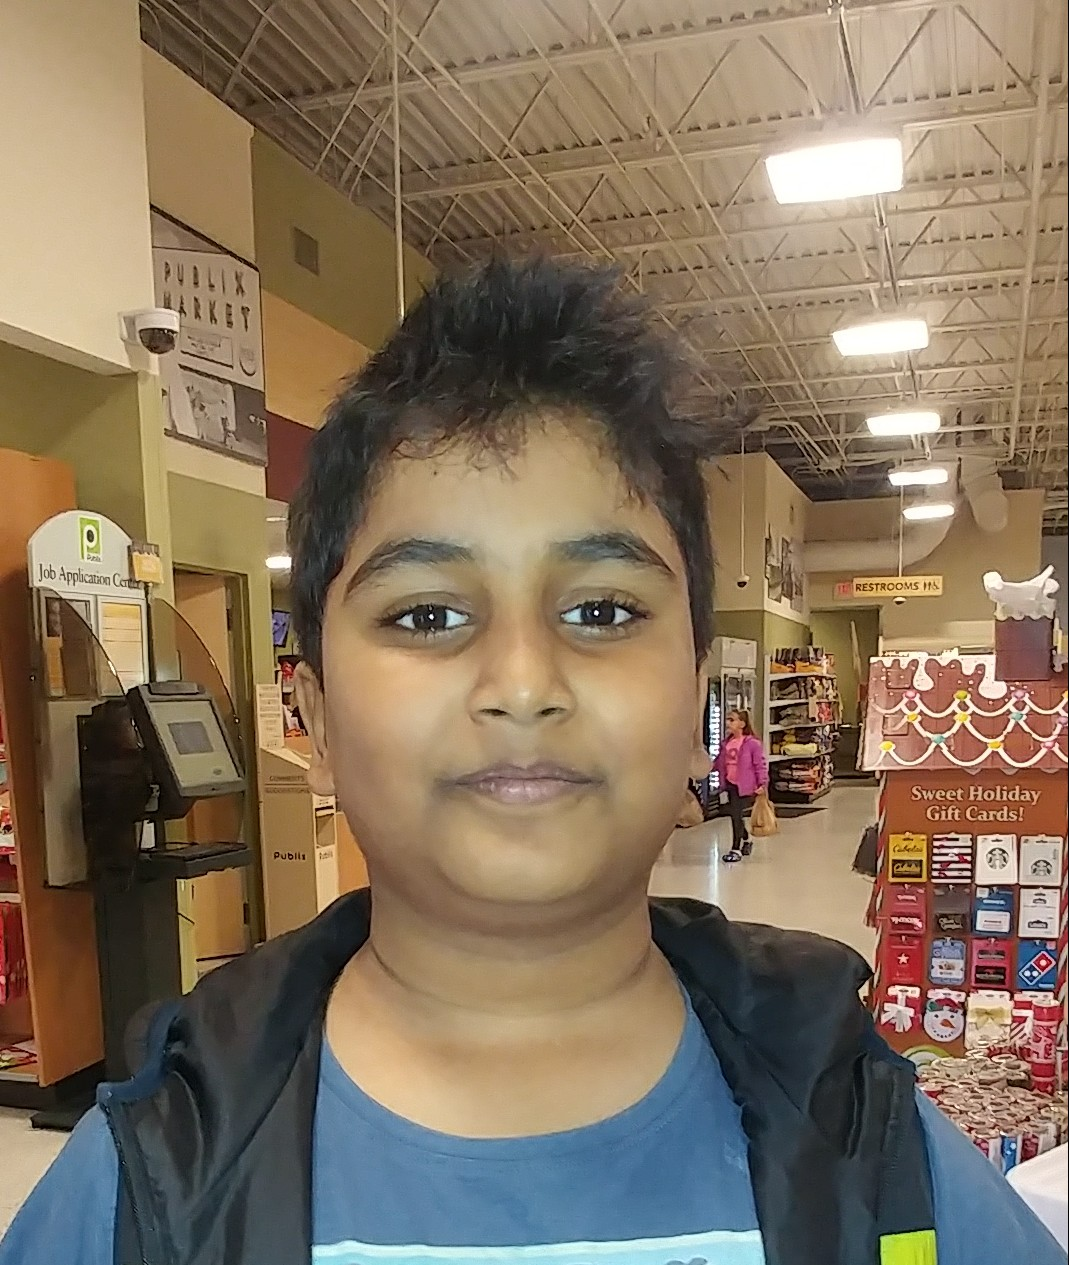 A pilot because I have a lot of interest in planes.  Aneesh  Age 10